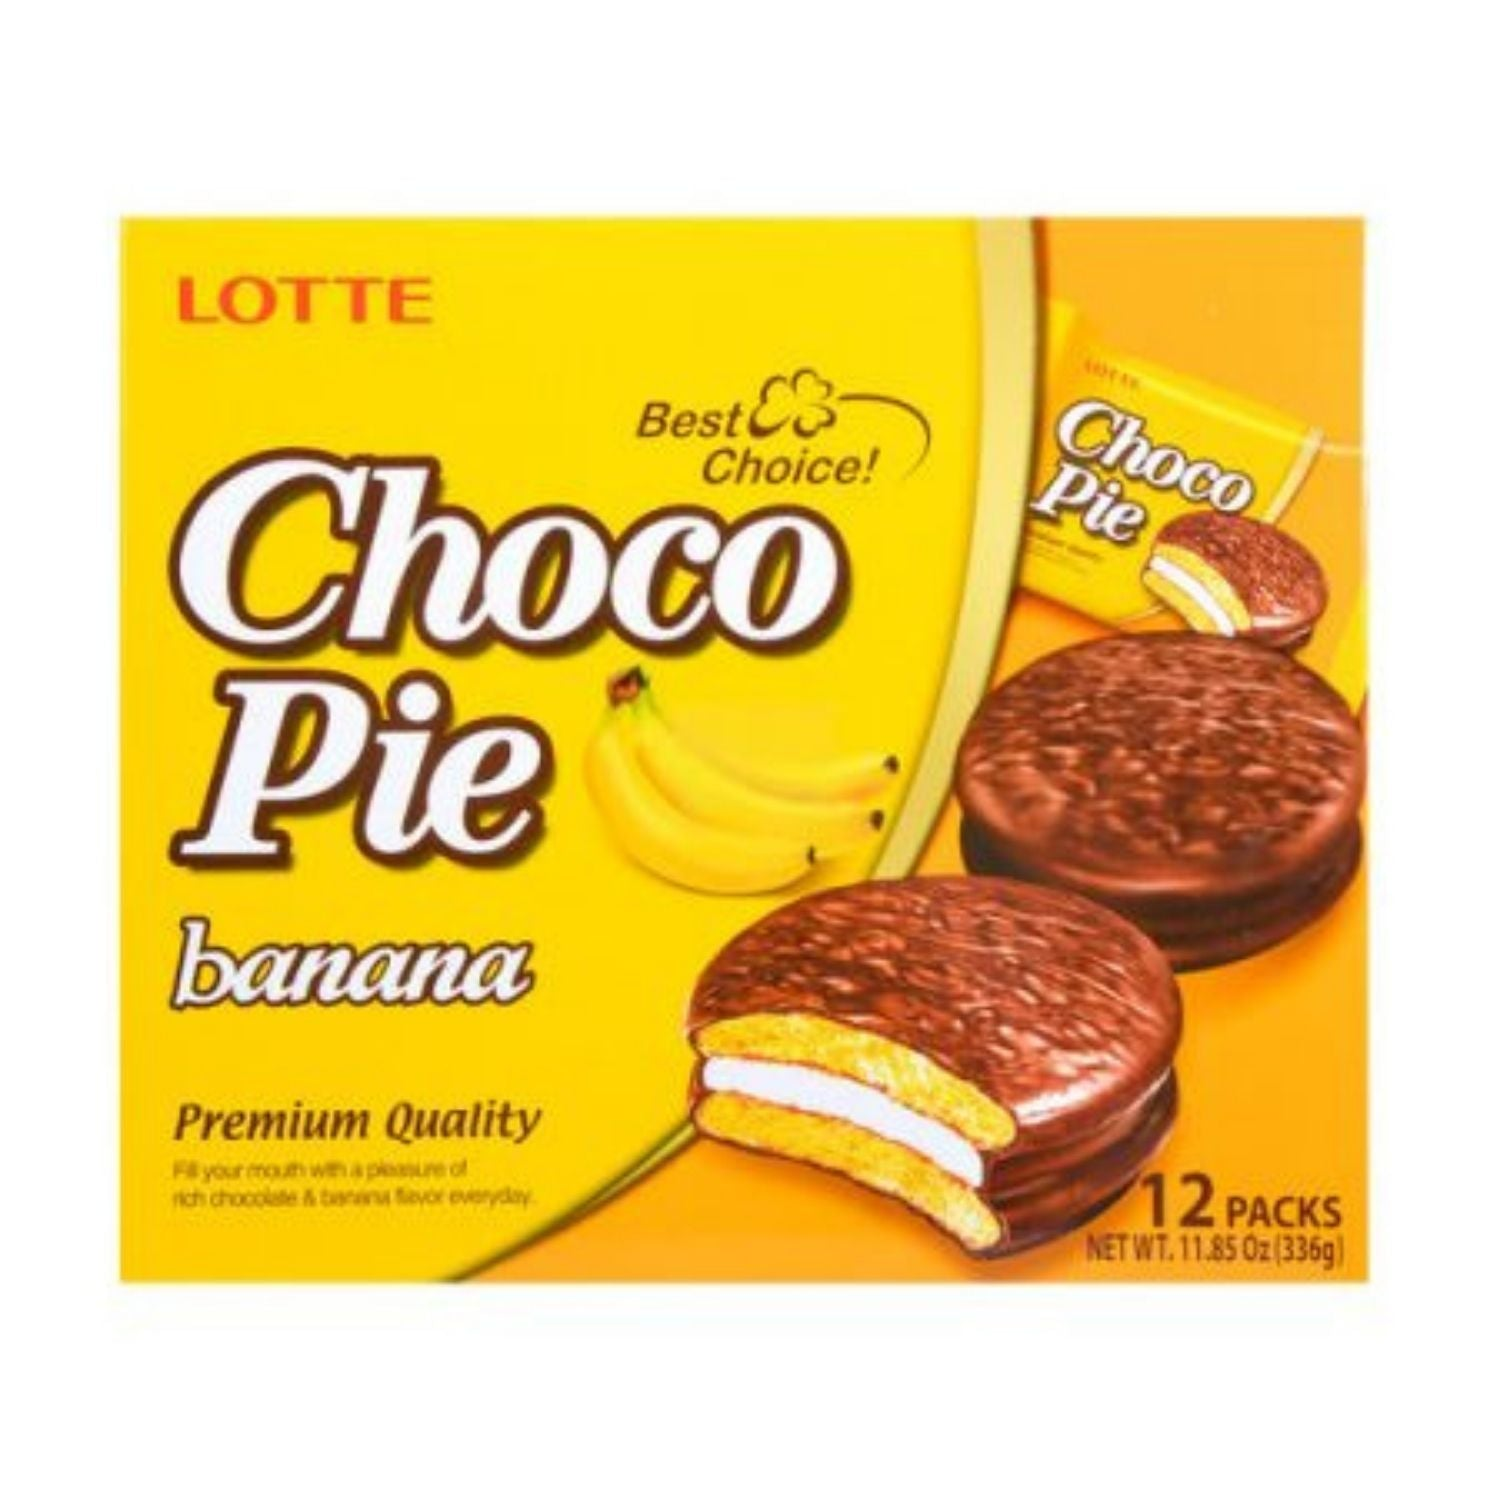 Lotte Banana Choco Pie (12 packs)